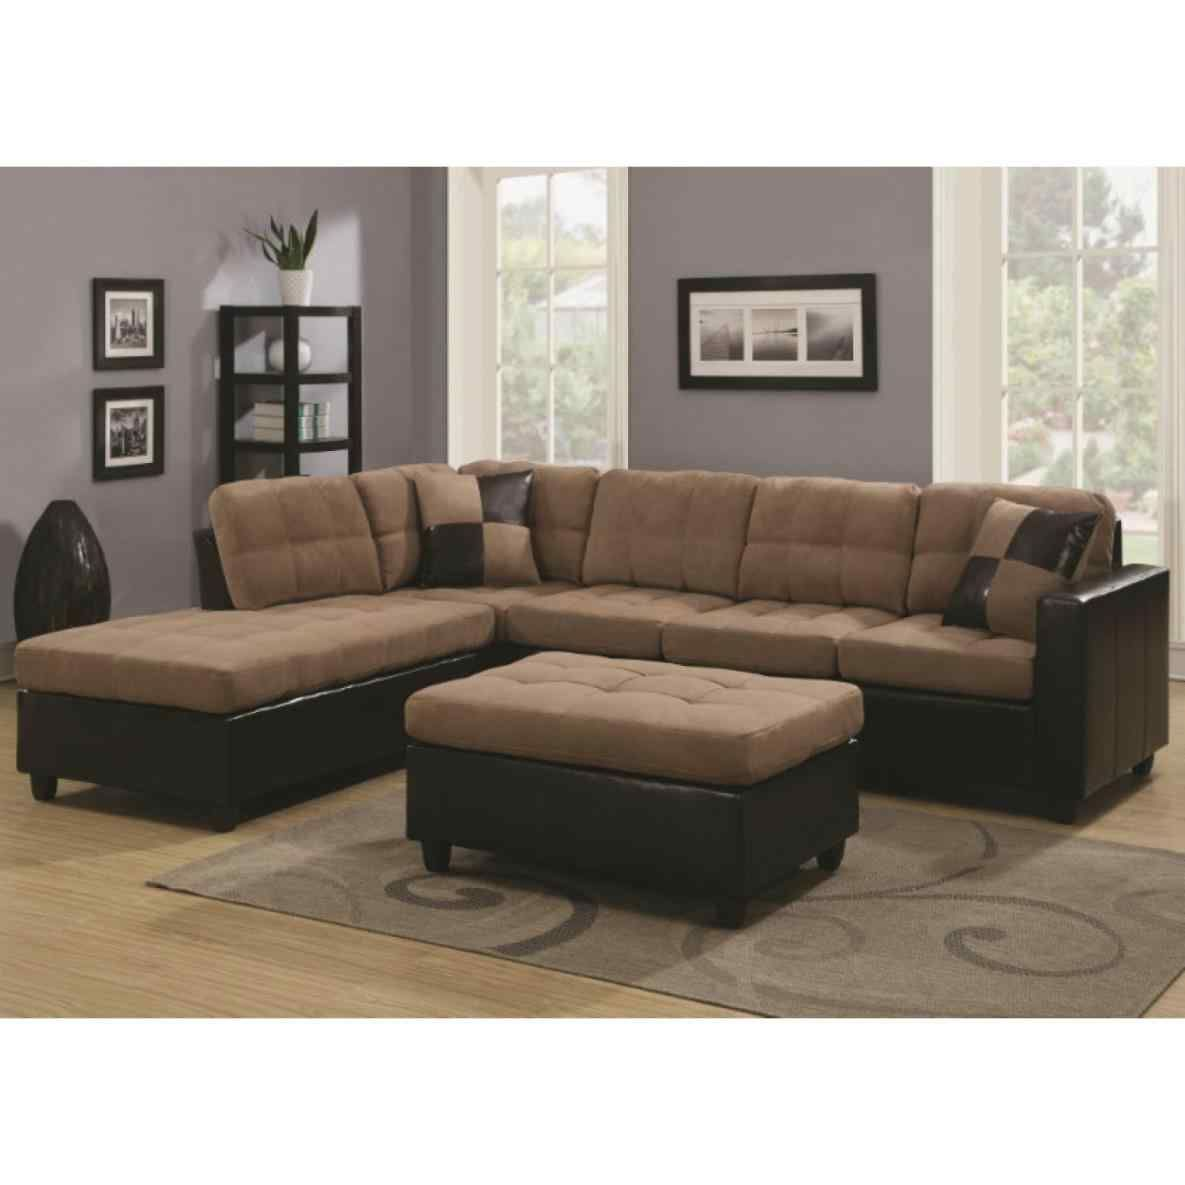 inexpensive sectional sofas for sale warehouse sofa roselawnlutheran nice cheap l shaped sleeper u interior design